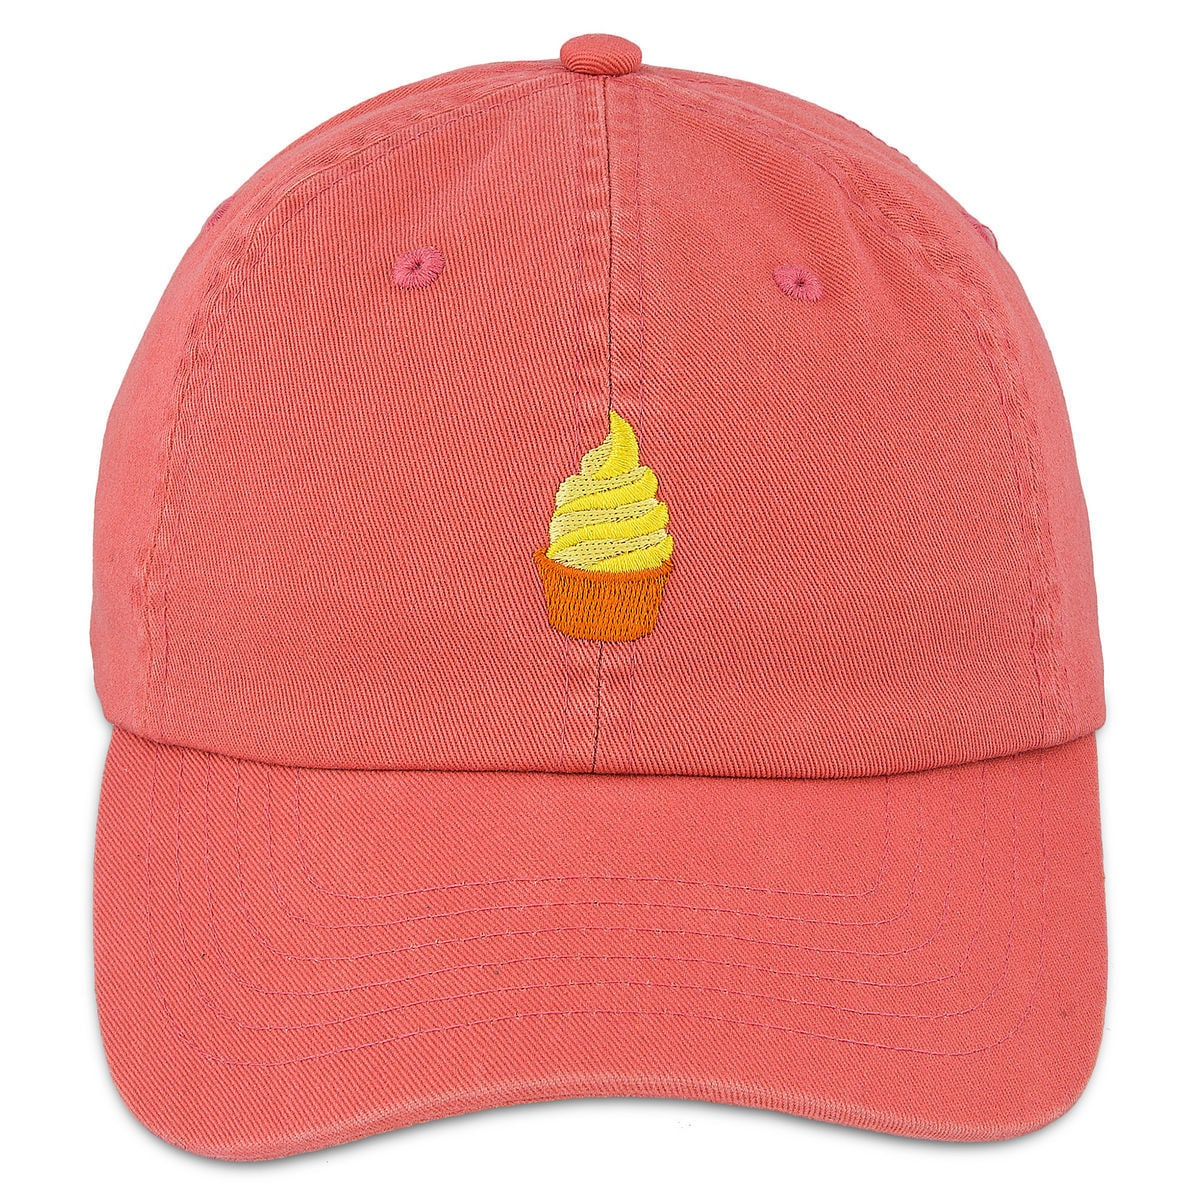 Product Image of Adventureland Pineapple Treat Baseball Cap for Adults   1 8dd9d1701de